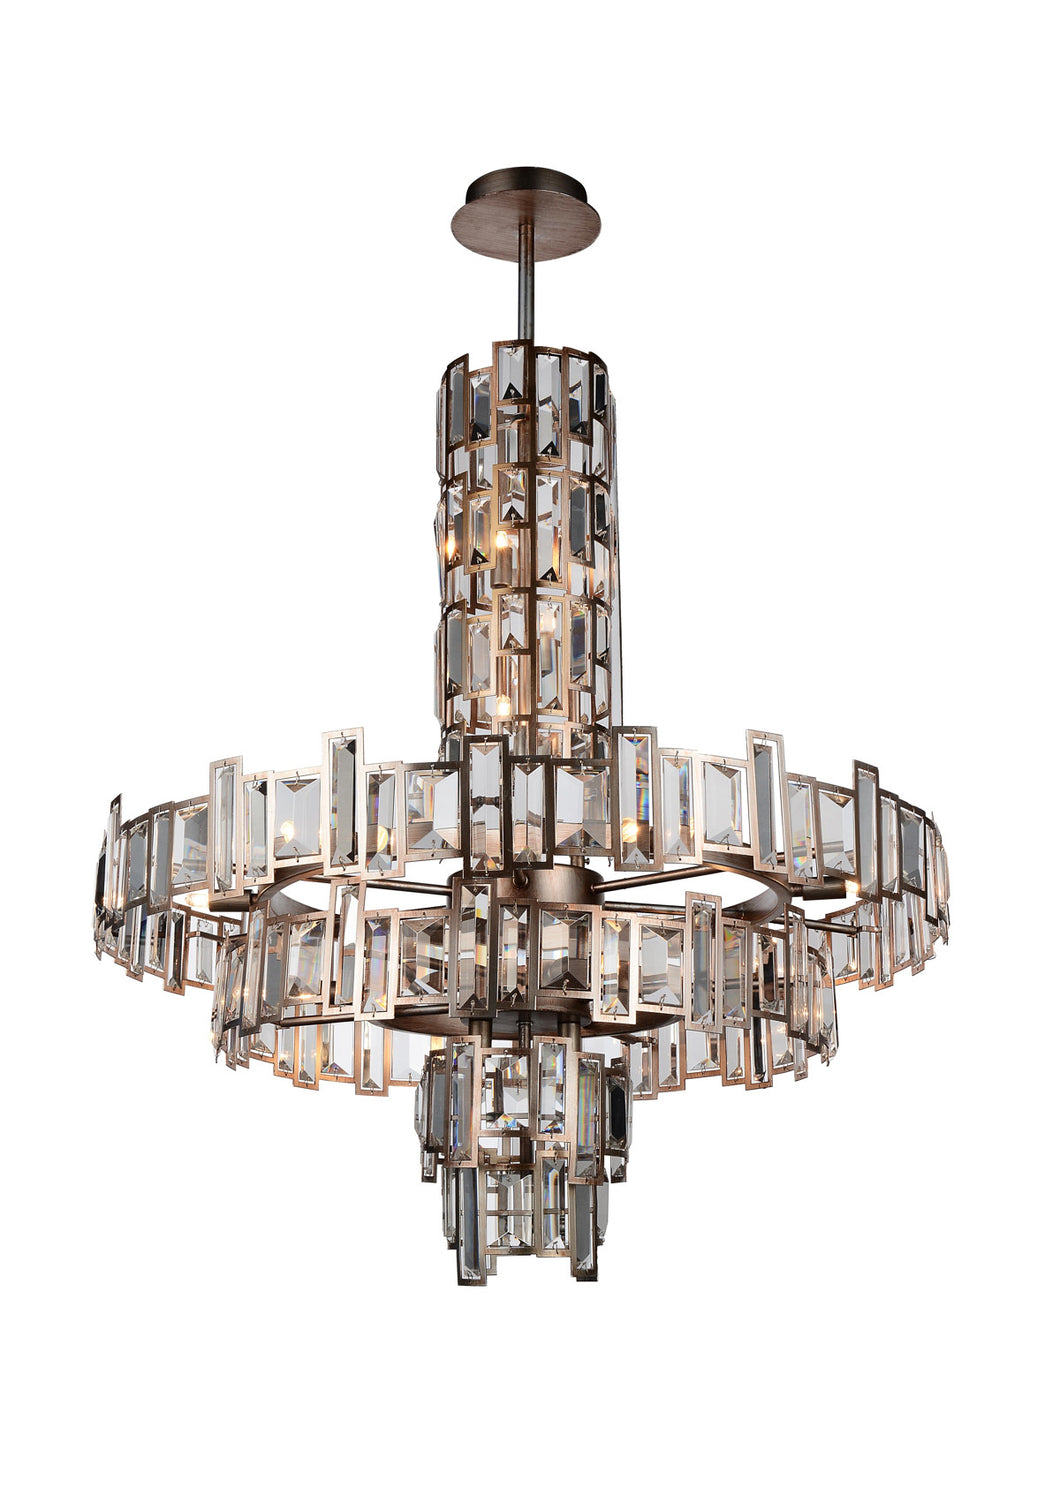 18 Light Down Chandelier with Champagne finish